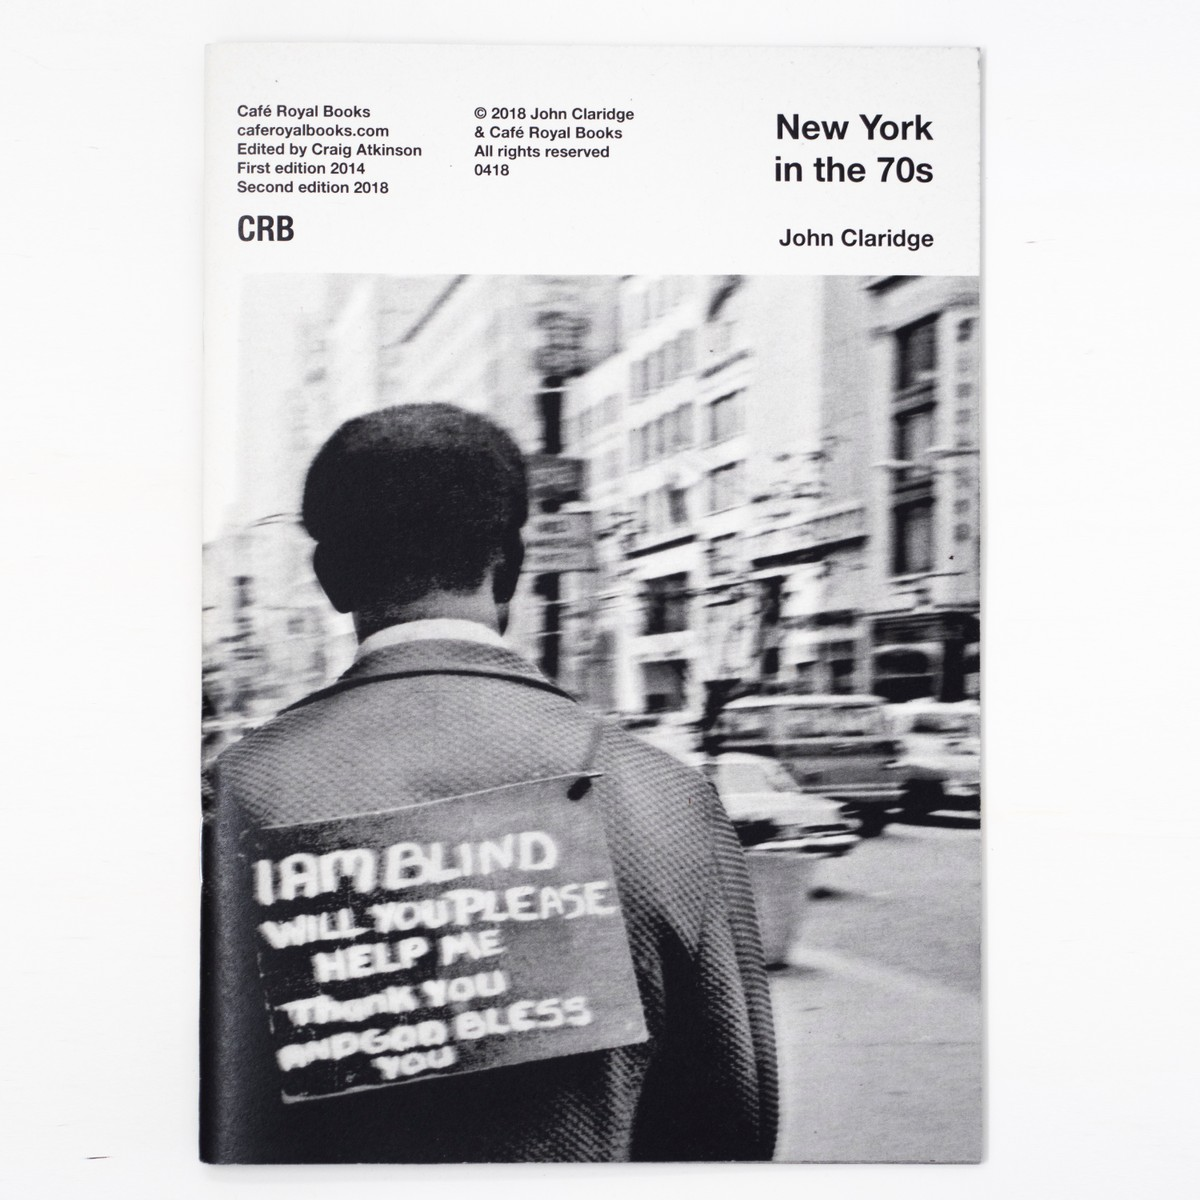 Photo of New York in the 70s Photozine